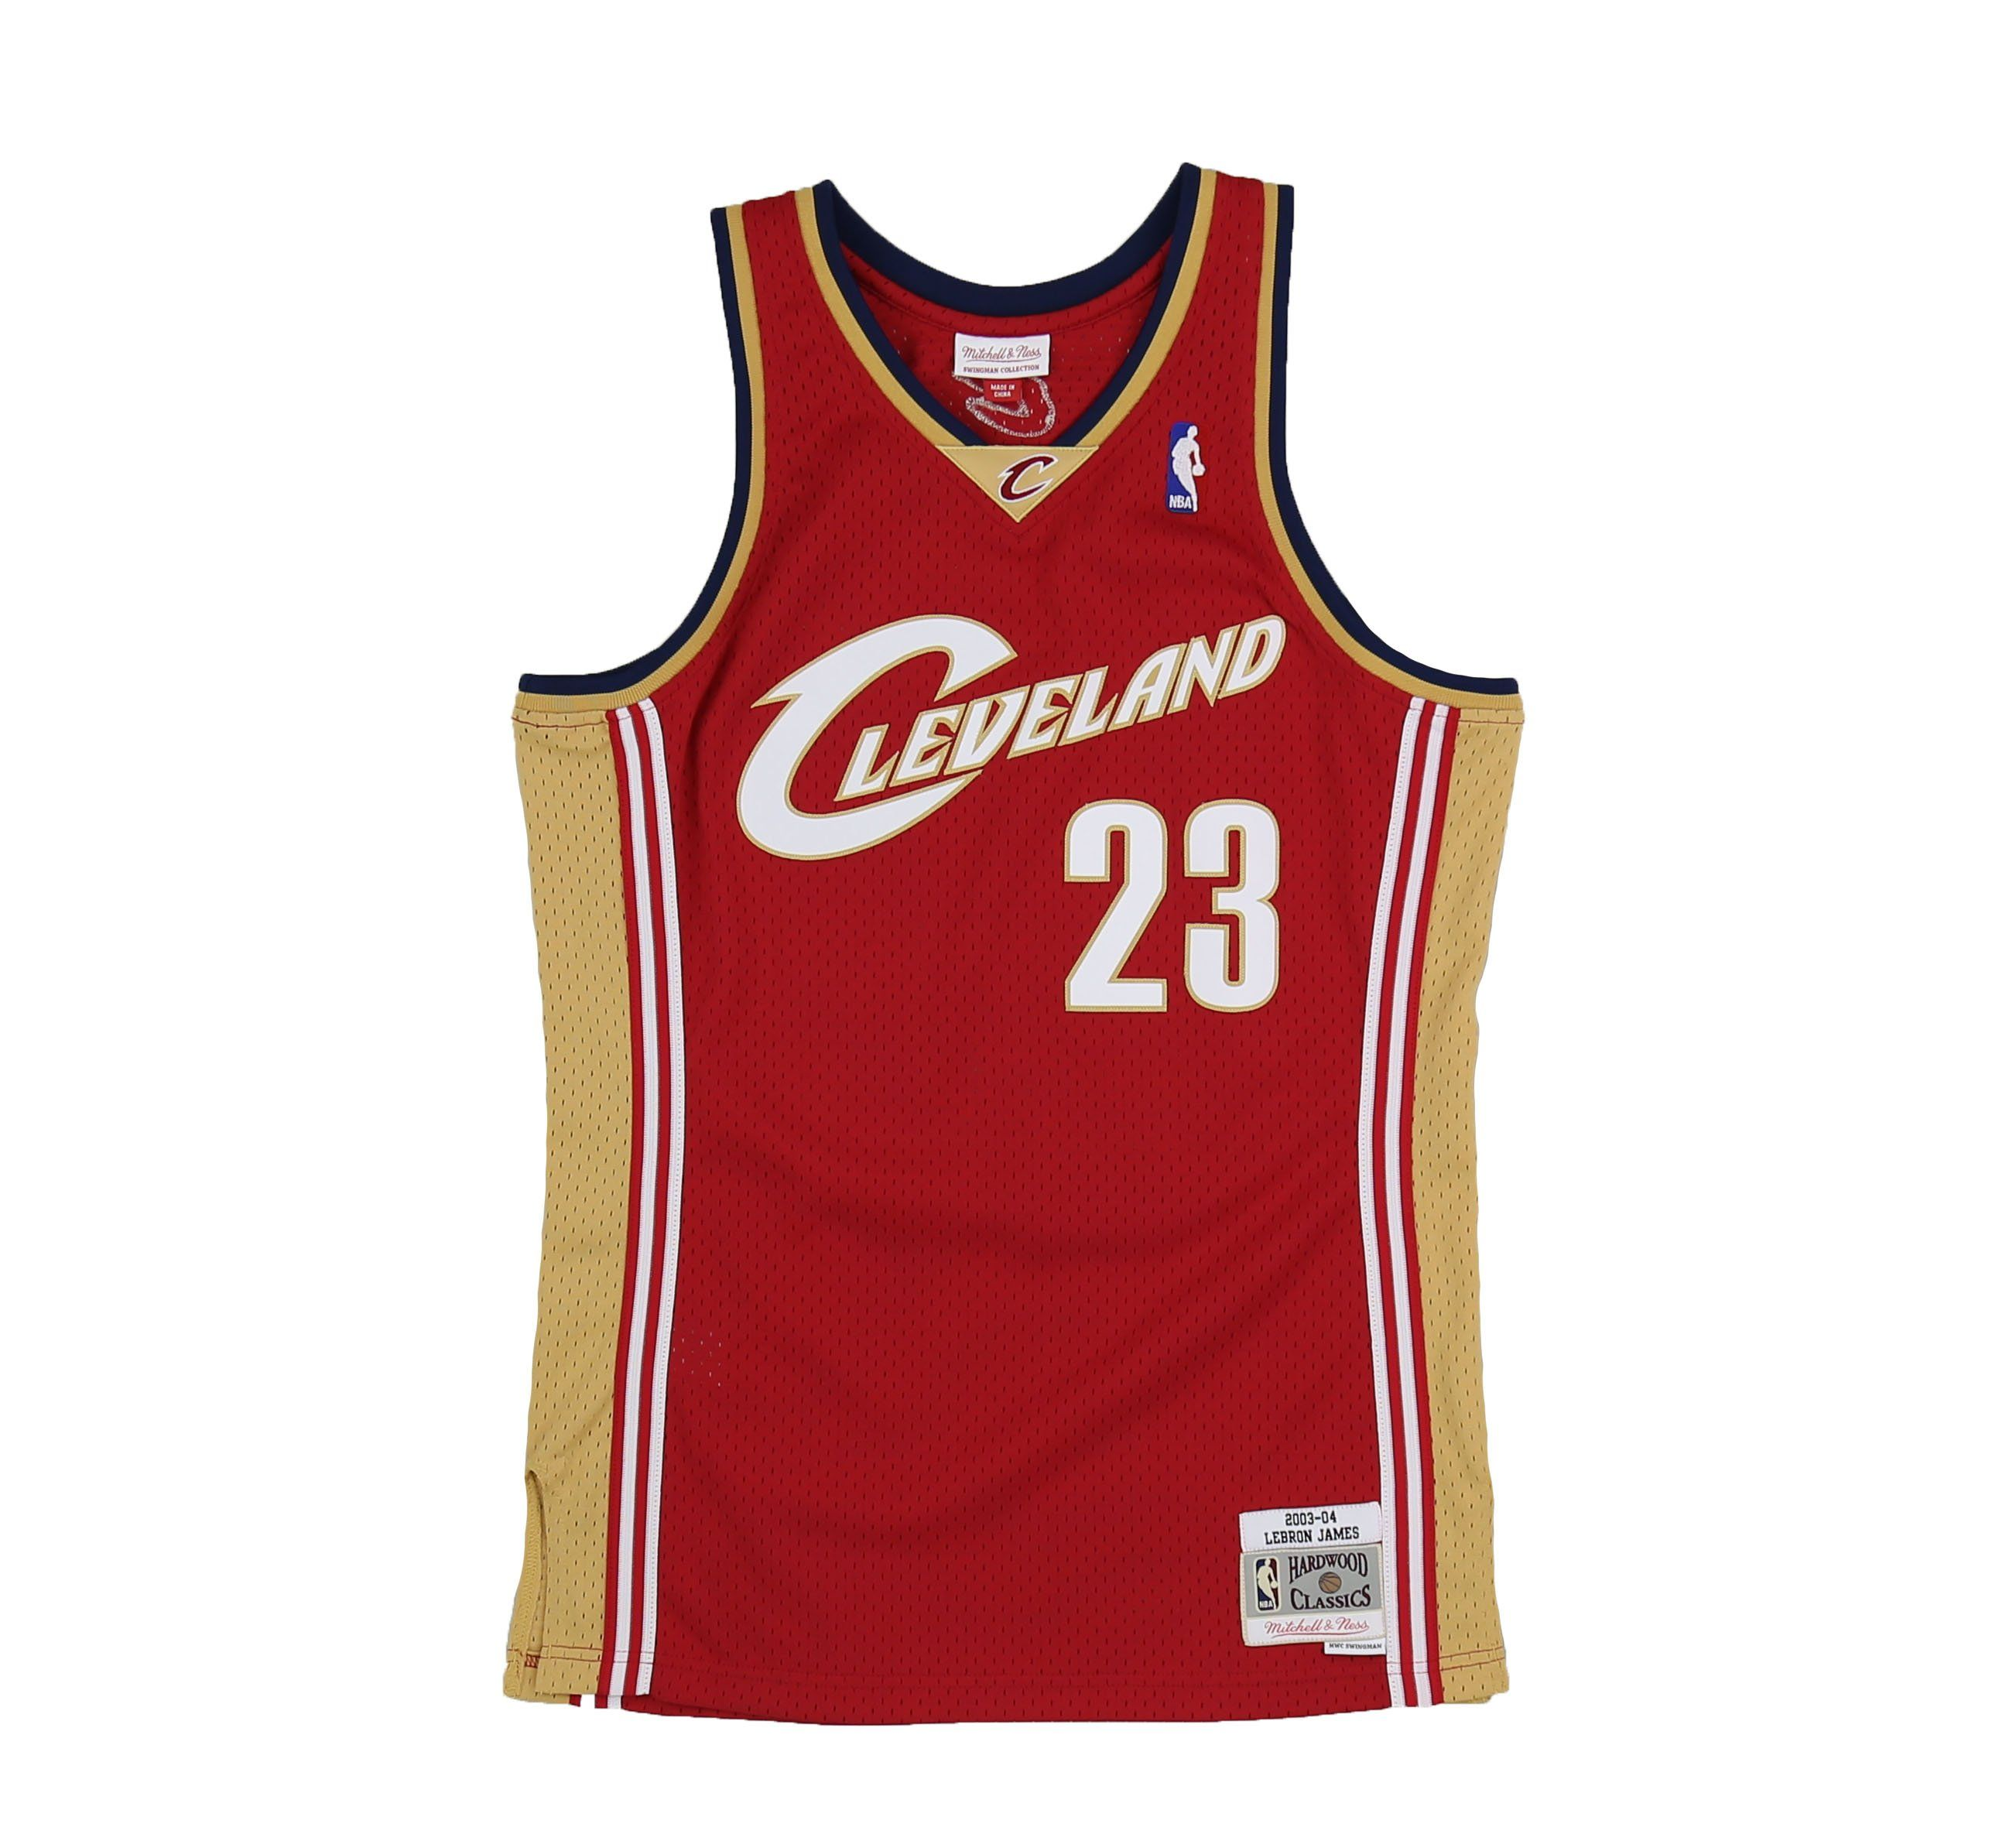 wholesale dealer 5f936 0c9ff CLEVELAND CAVALIERS LEBRON JAMES #23 SWINGMAN JERSEY -